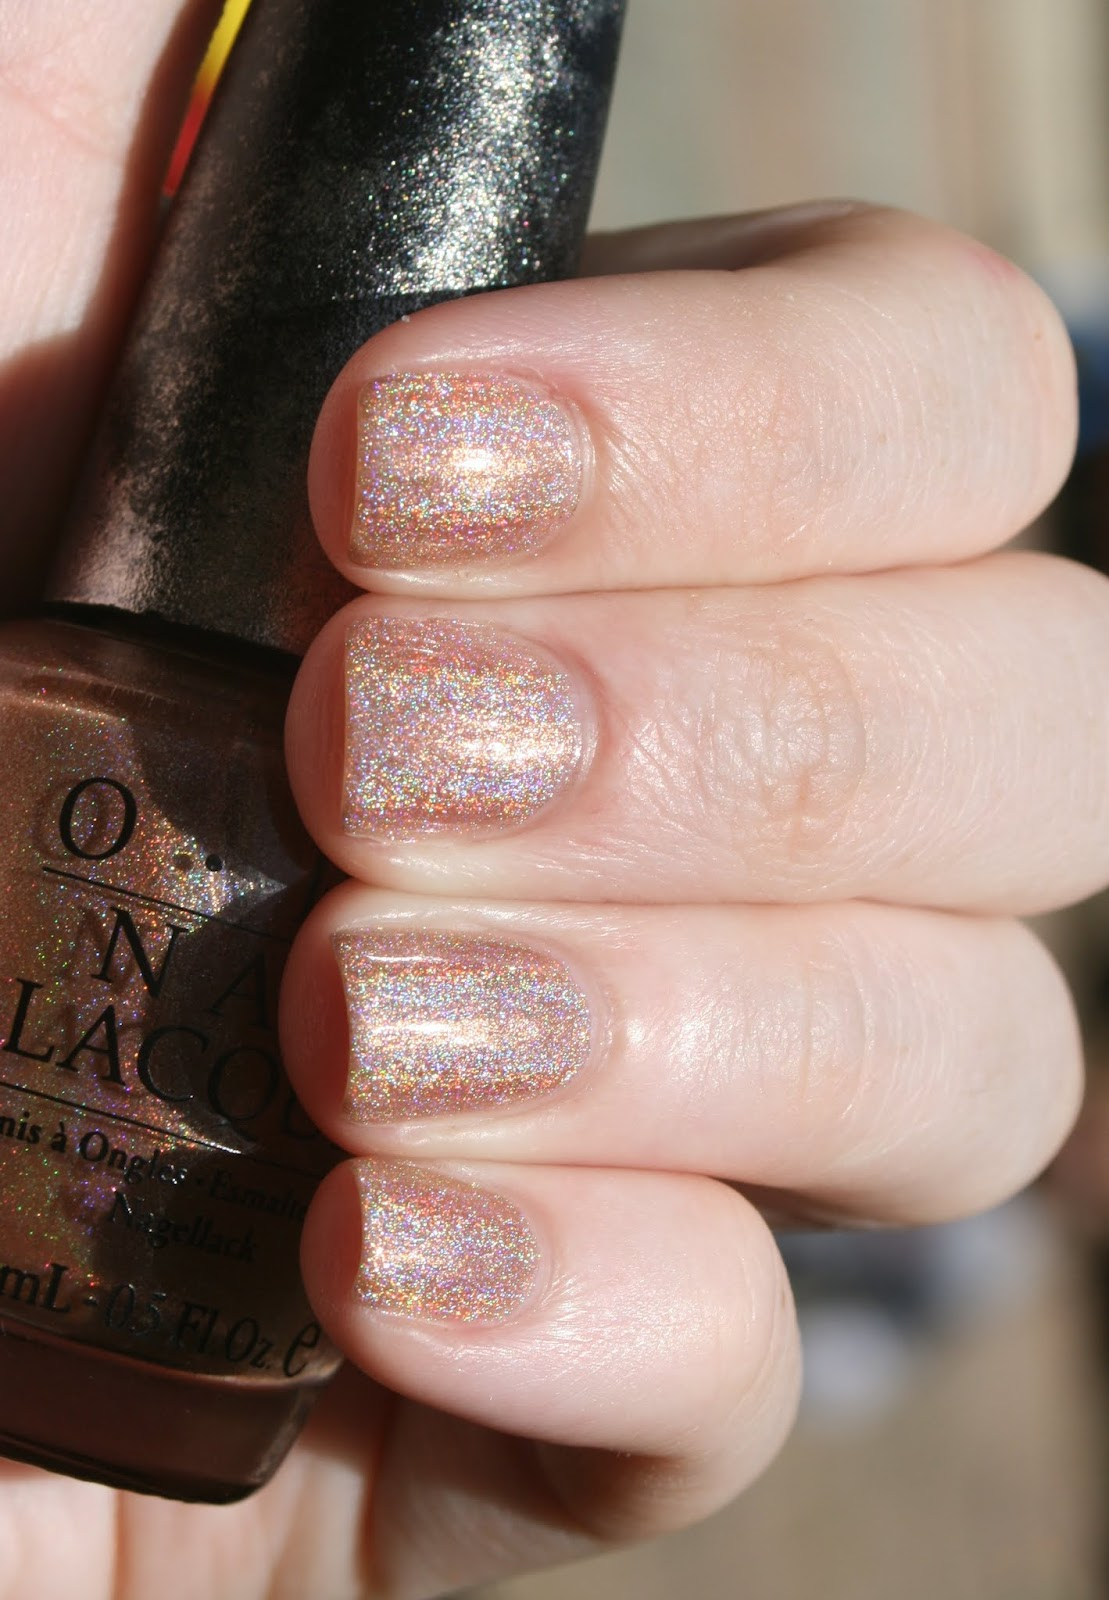 OPI DS Desire swatch